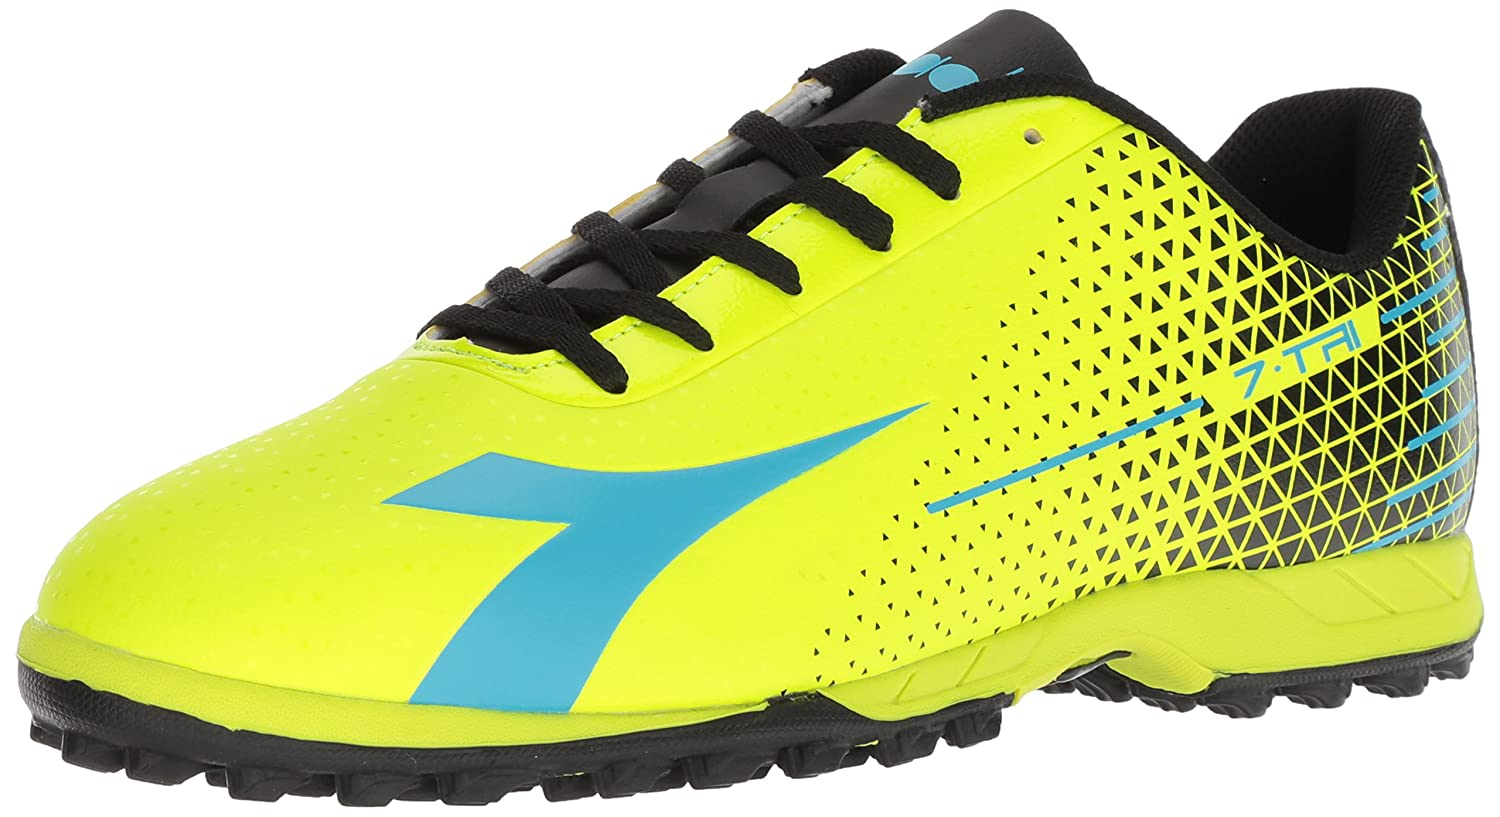 Diadora メンズ B076943CSS 9 D(M) US|Flou Yellow/Flou Blue/Black Flou Yellow/Flou Blue/Black 9 D(M) US